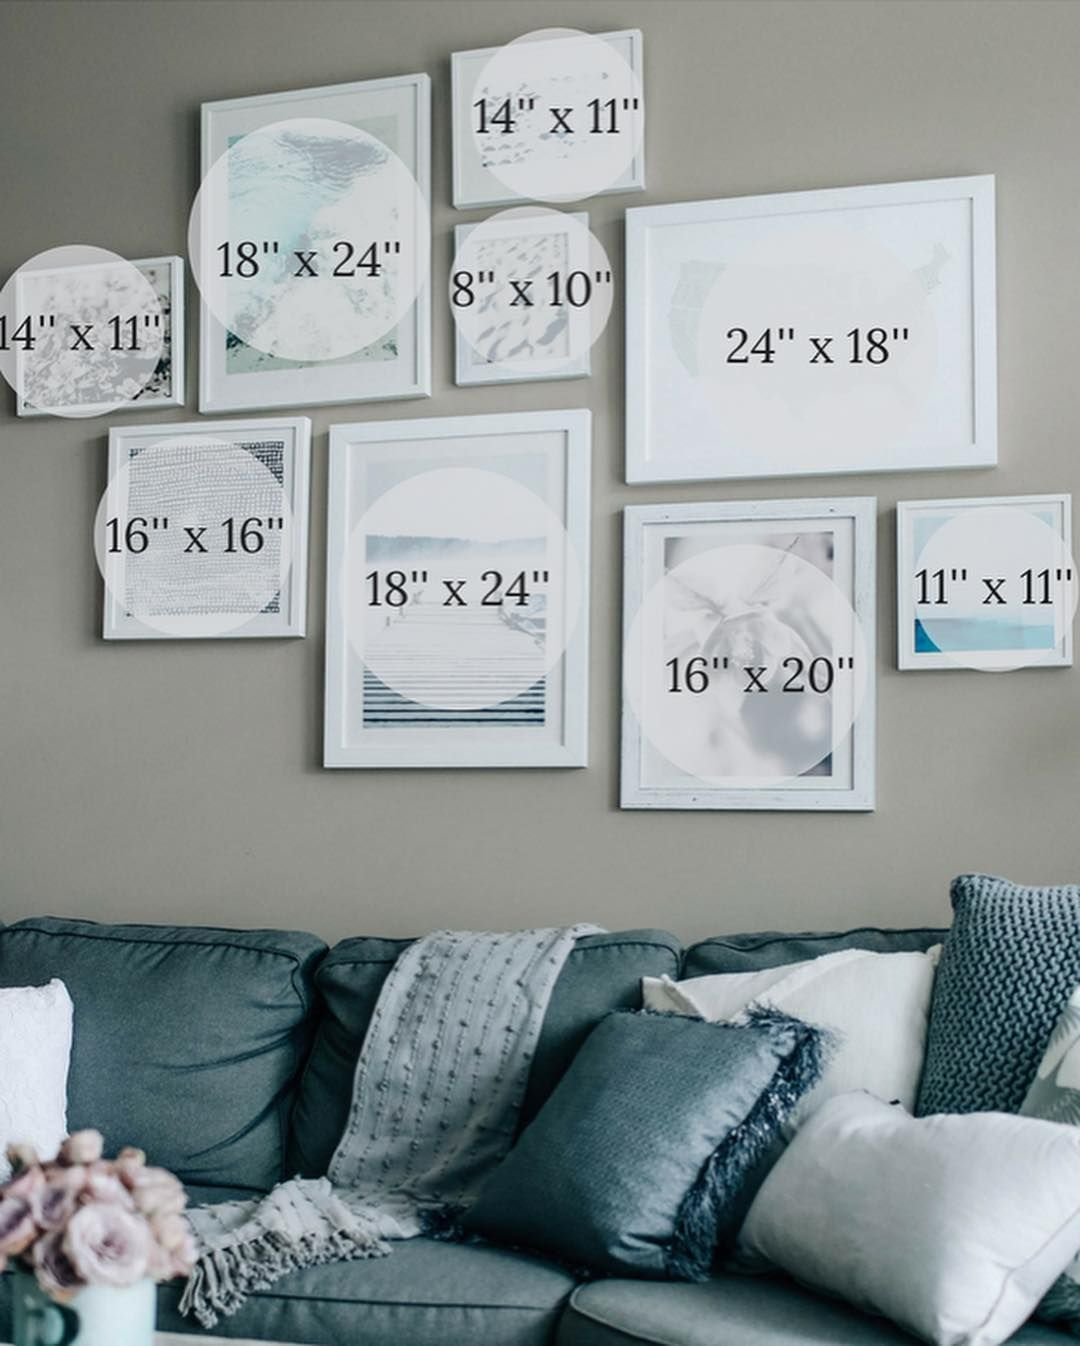 Gallery Wall Sizes For Reference Regram Via Prettyinthepines Gallery Wall Living Room Gallery Wall Layout Living Room Gallery Wall Sizes